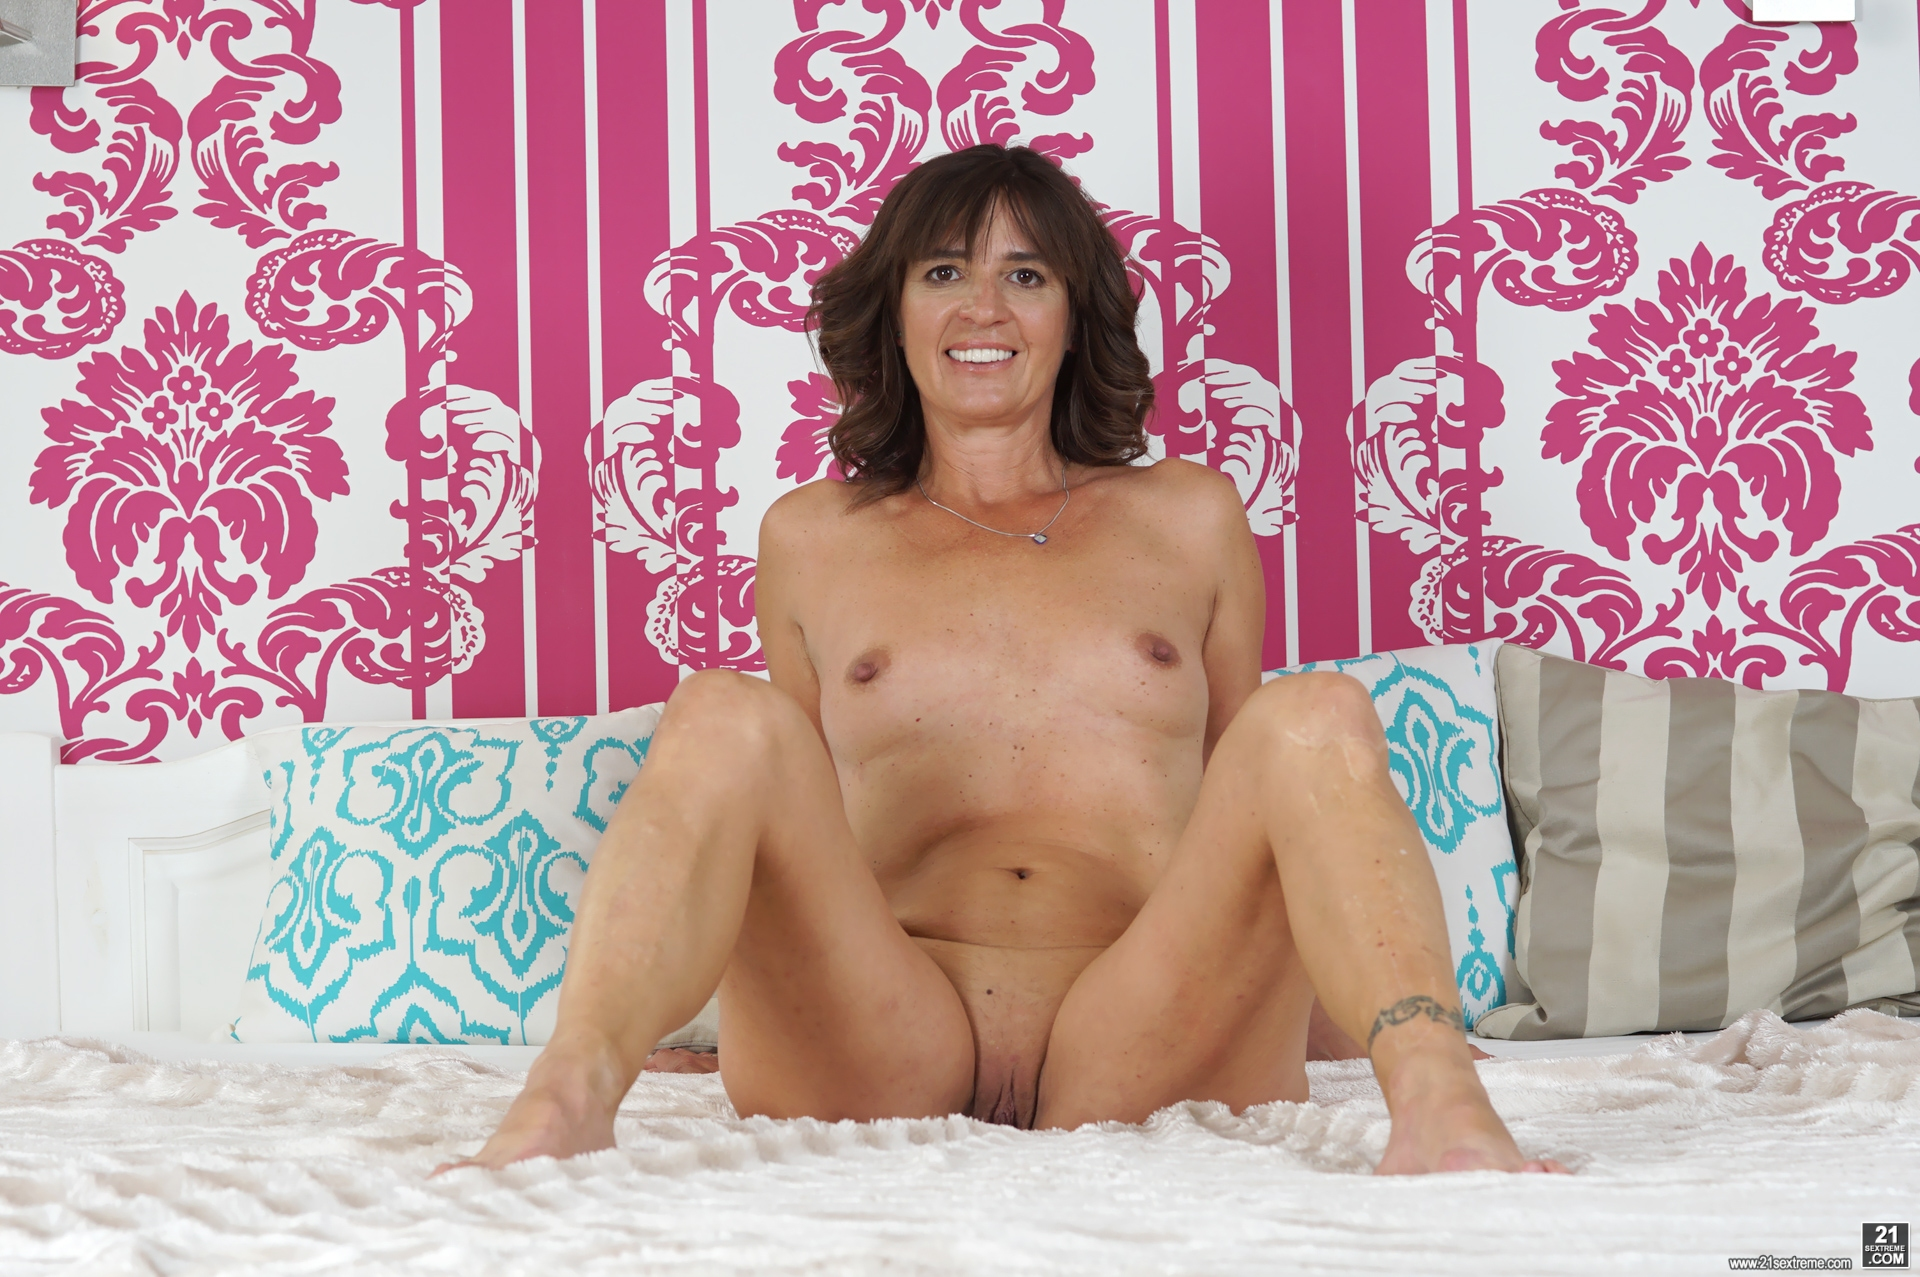 21 Sextreme Porno Net mariana in 21sextreme fucking profusely july 21, 2016